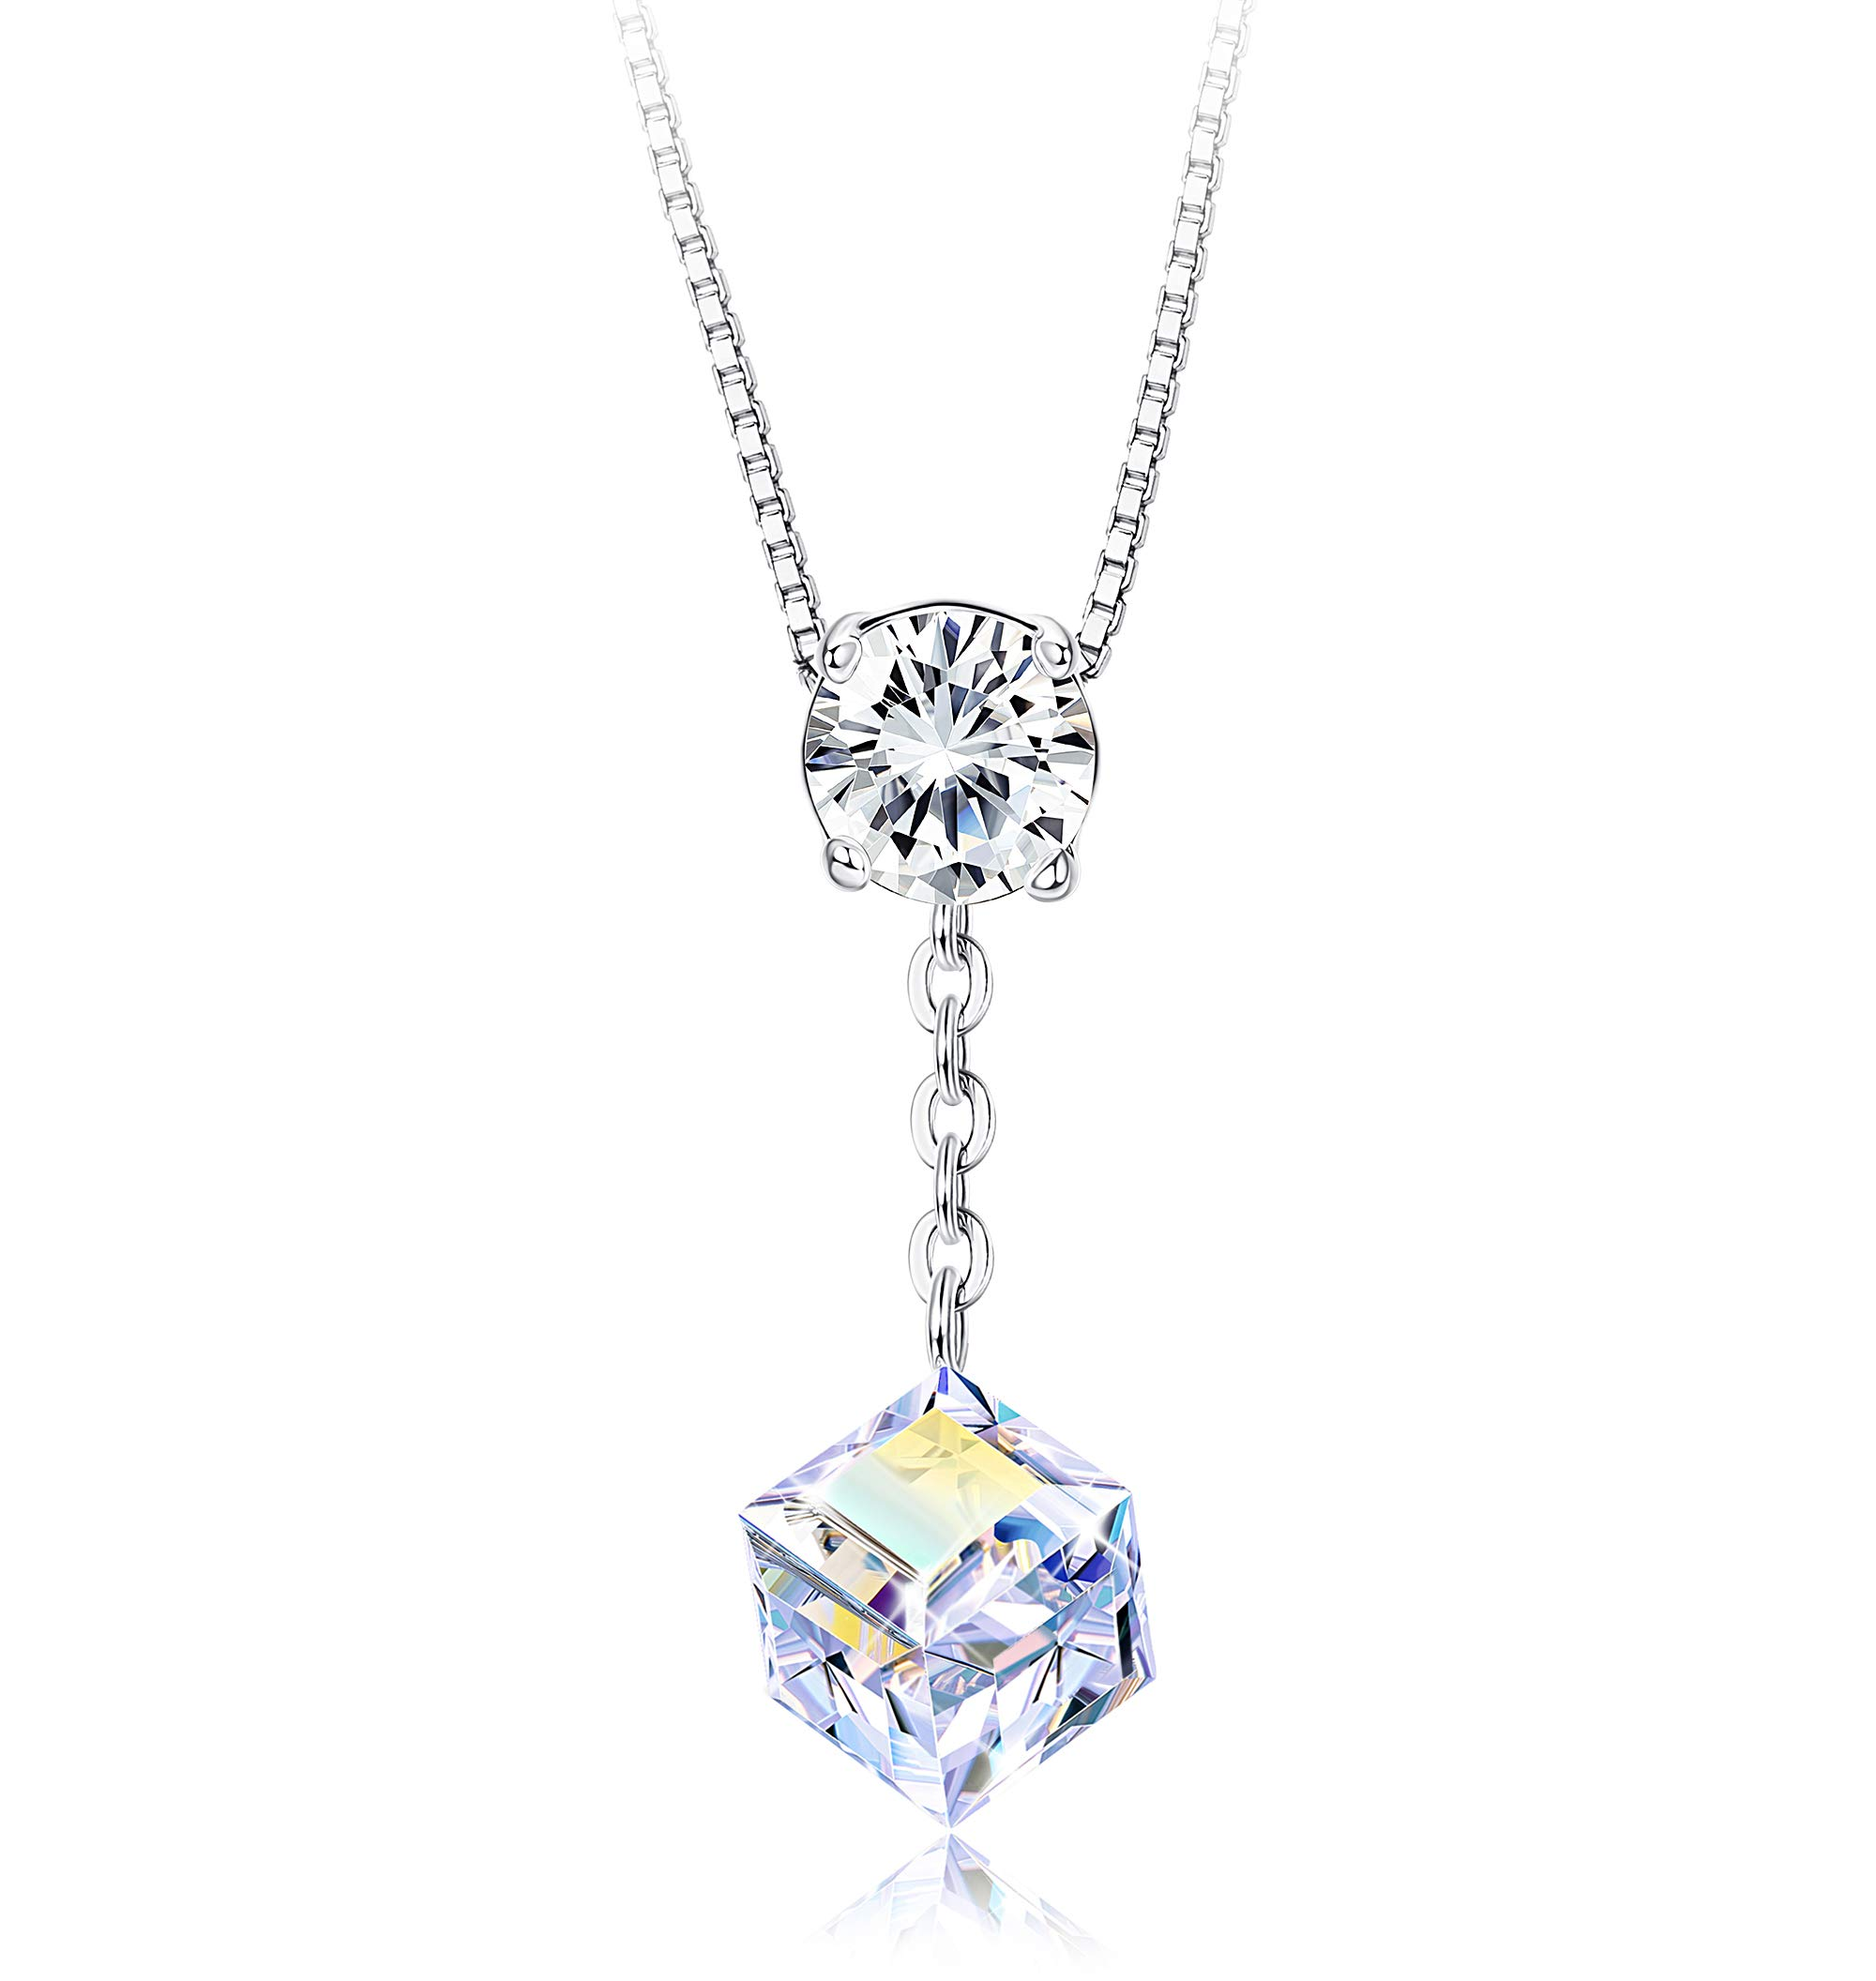 Sllaiss Square Aurora Crystal Y Necklace for Women Round-Cut Clear Crystal Pendant Chain Necklace Jewelry Gift for Her Crystals from Swarovski by Sllaiss